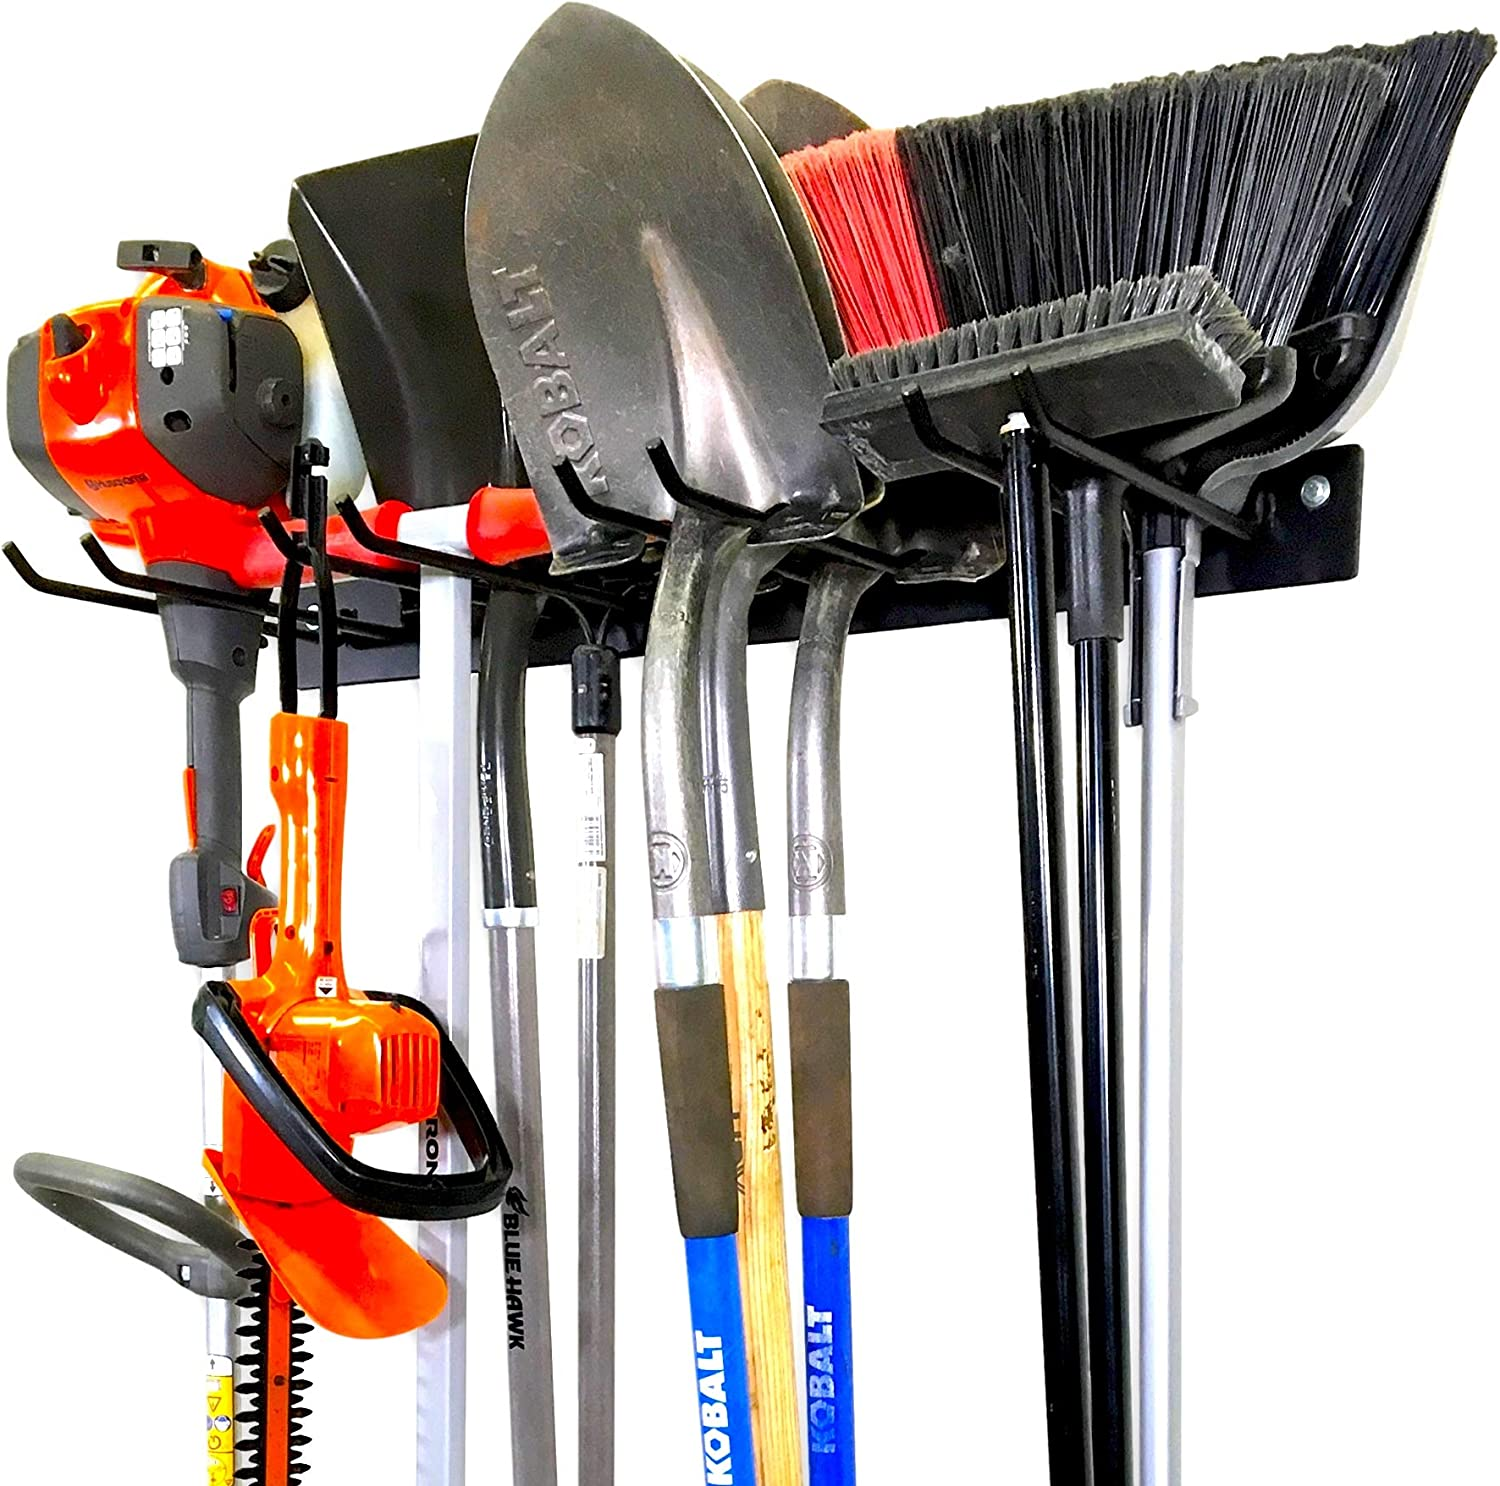 StoreYourBoard BLAT Tool Storage Rack, Garage Wall Mount Organizer, Heavy-Duty Solid Steel Max 200 lbs, Holds Garden Tools, Shovels, Rakes, Brooms, Cords, Hoses, Ropes, and More